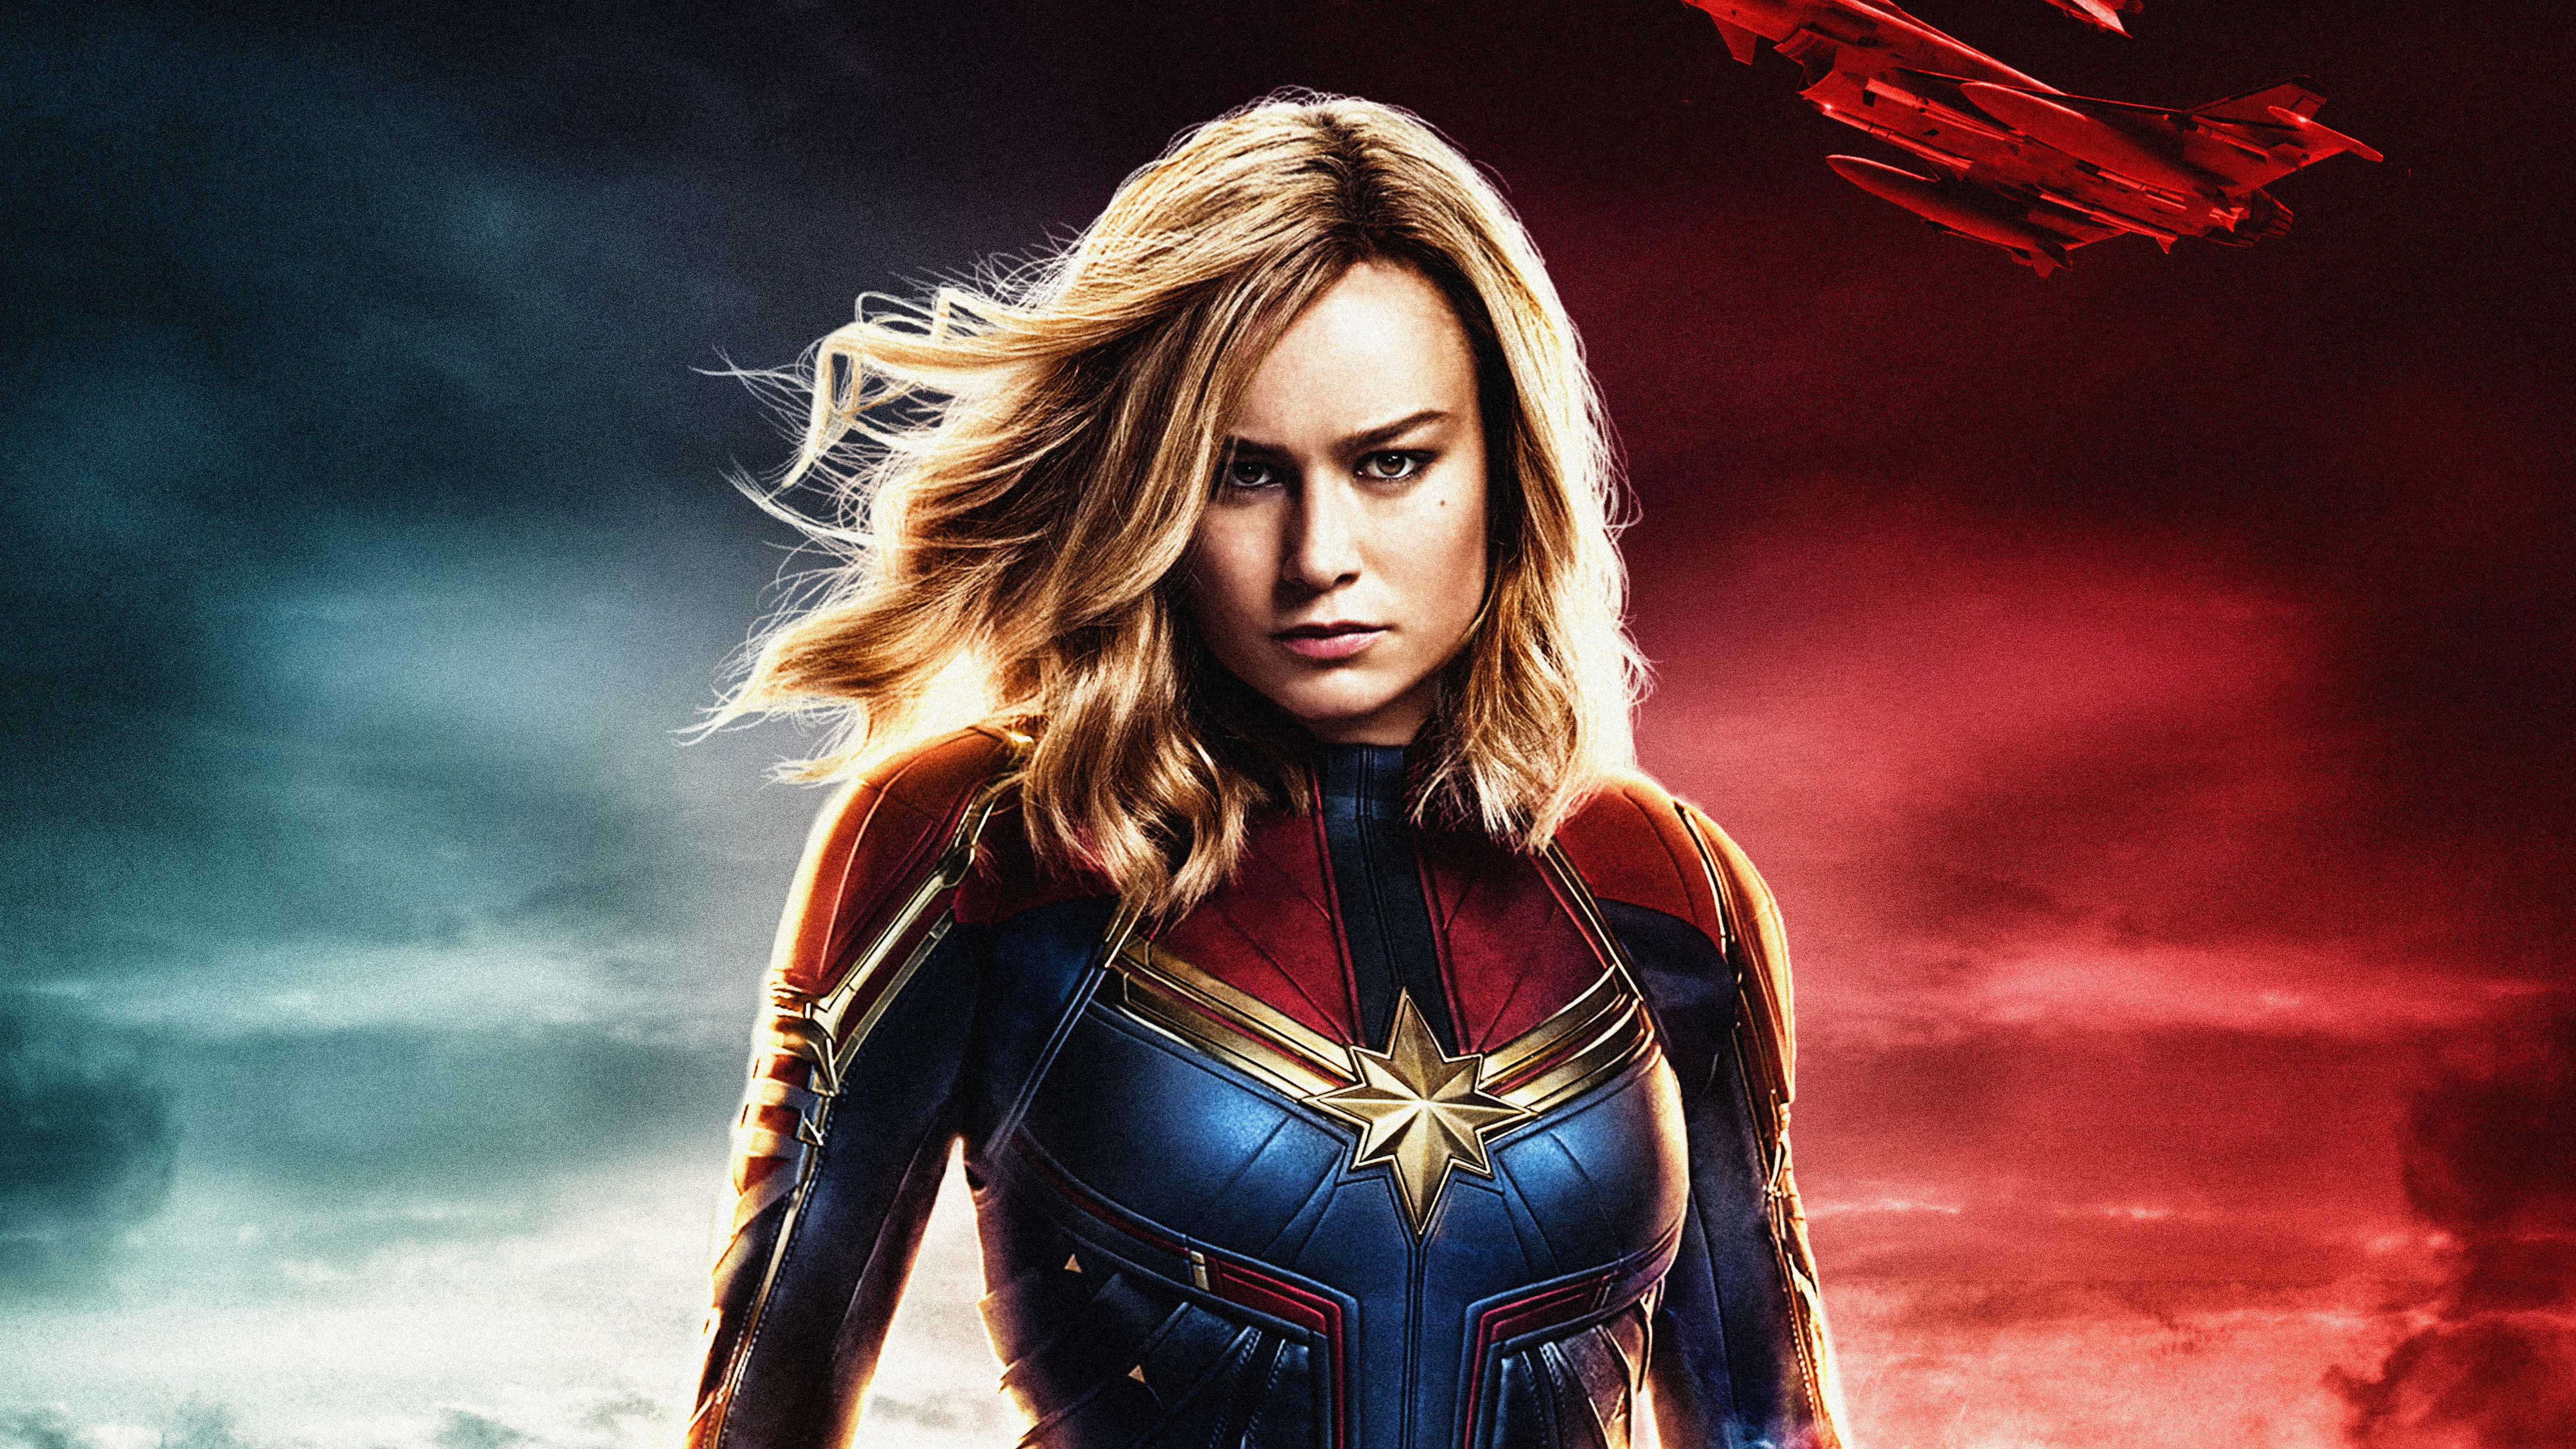 Captain Marvel 4k Ultra Hd Wallpaper Background Image